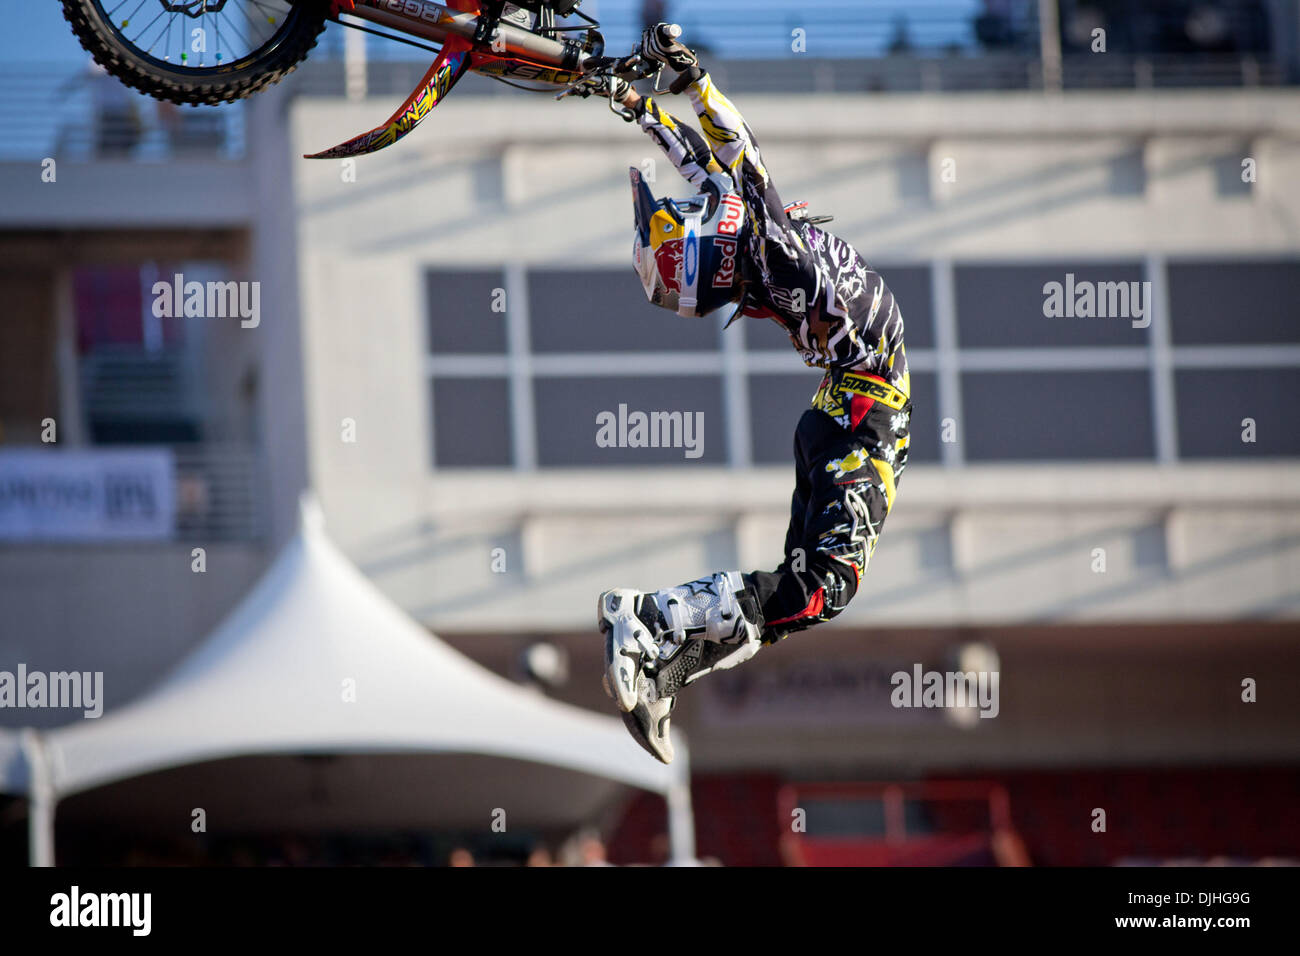 July 29, 2010 - Los Angeles, CA, U.S - 28 July 2010:  Levi Sherwood's style and huge airs earned him a silver medal in mens Moto X Freestyle at the X Games in Los Angeles, CA. (Credit Image: © Josh Chapel/Southcreek Global/ZUMApress.com) - Stock Image